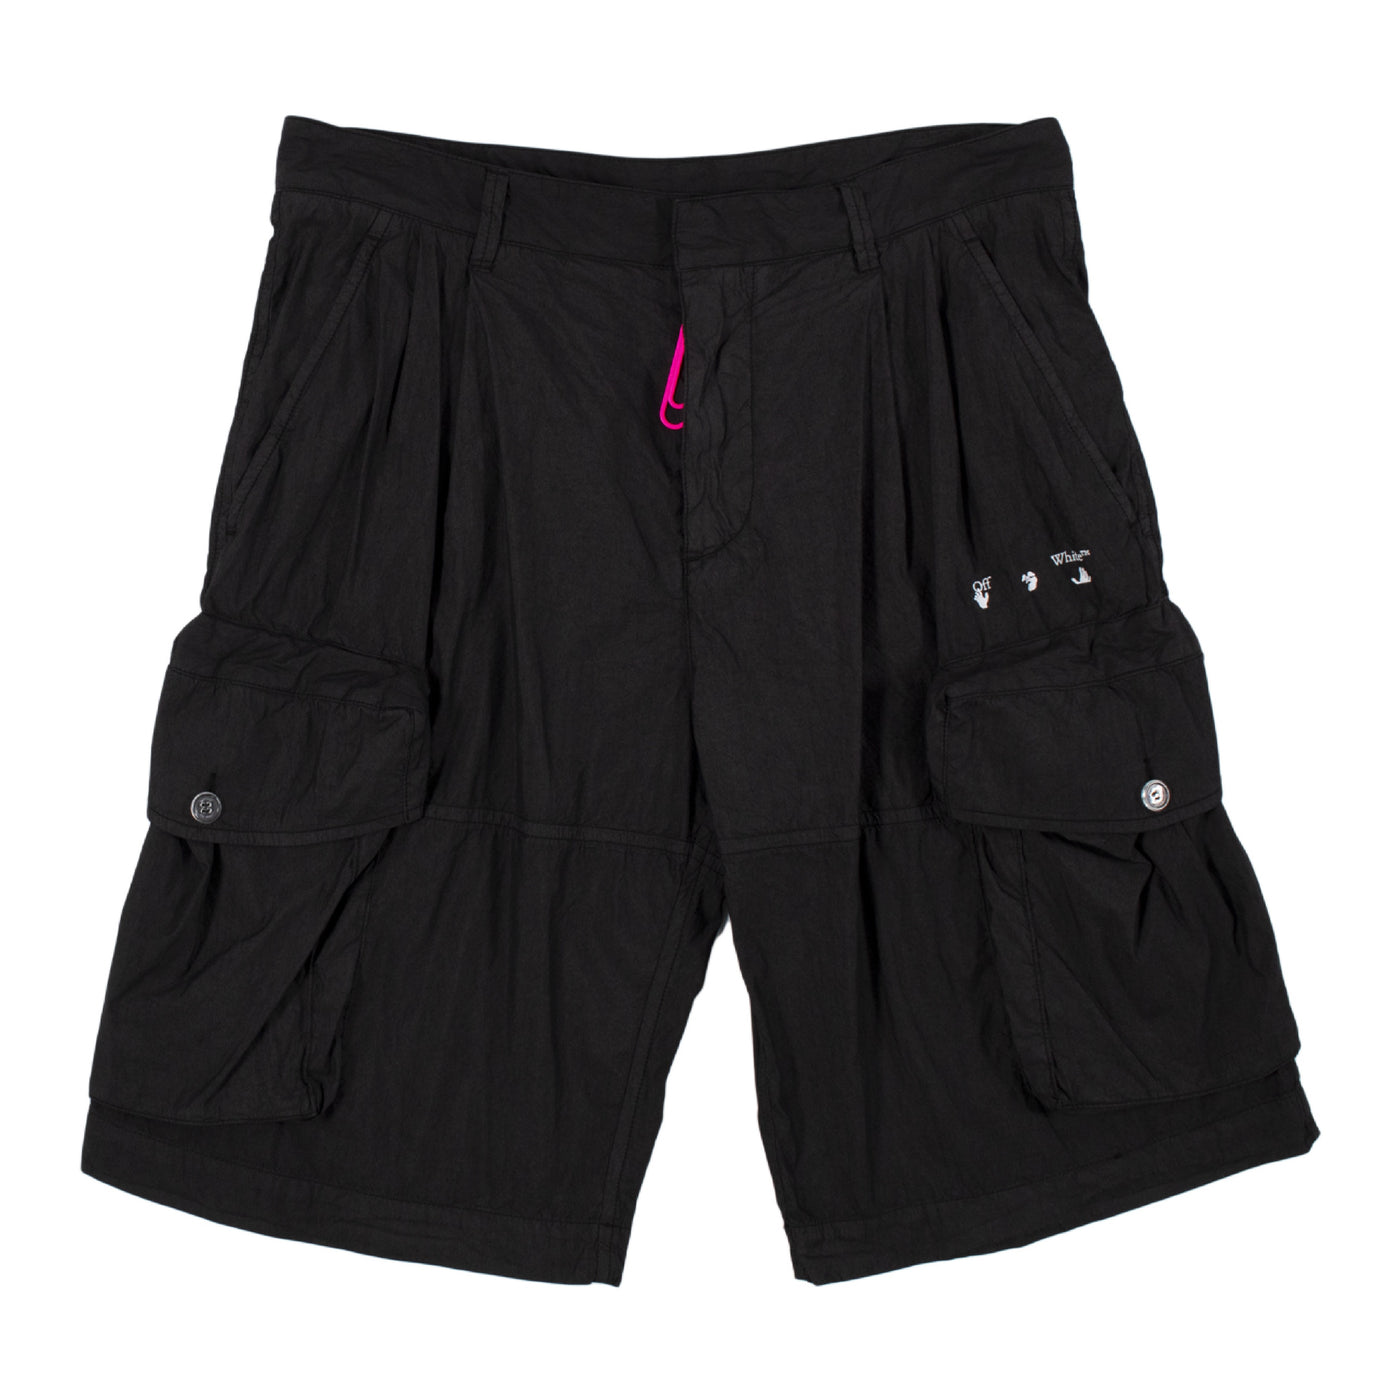 Load image into Gallery viewer, OFF-WHITE LOGO UTILITY SHORTS BLACK